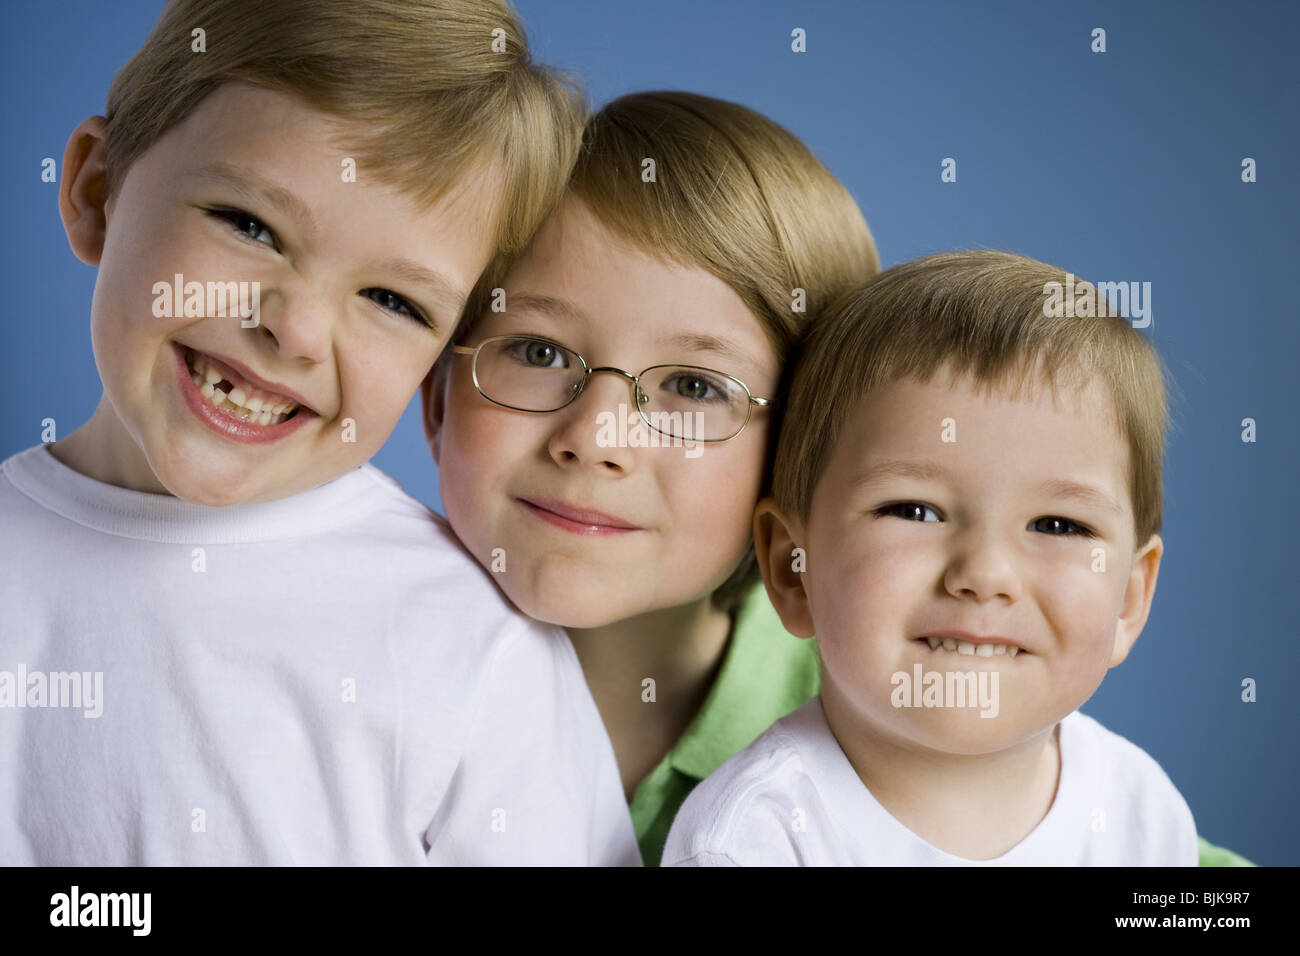 Portrait of three boys - Stock Image